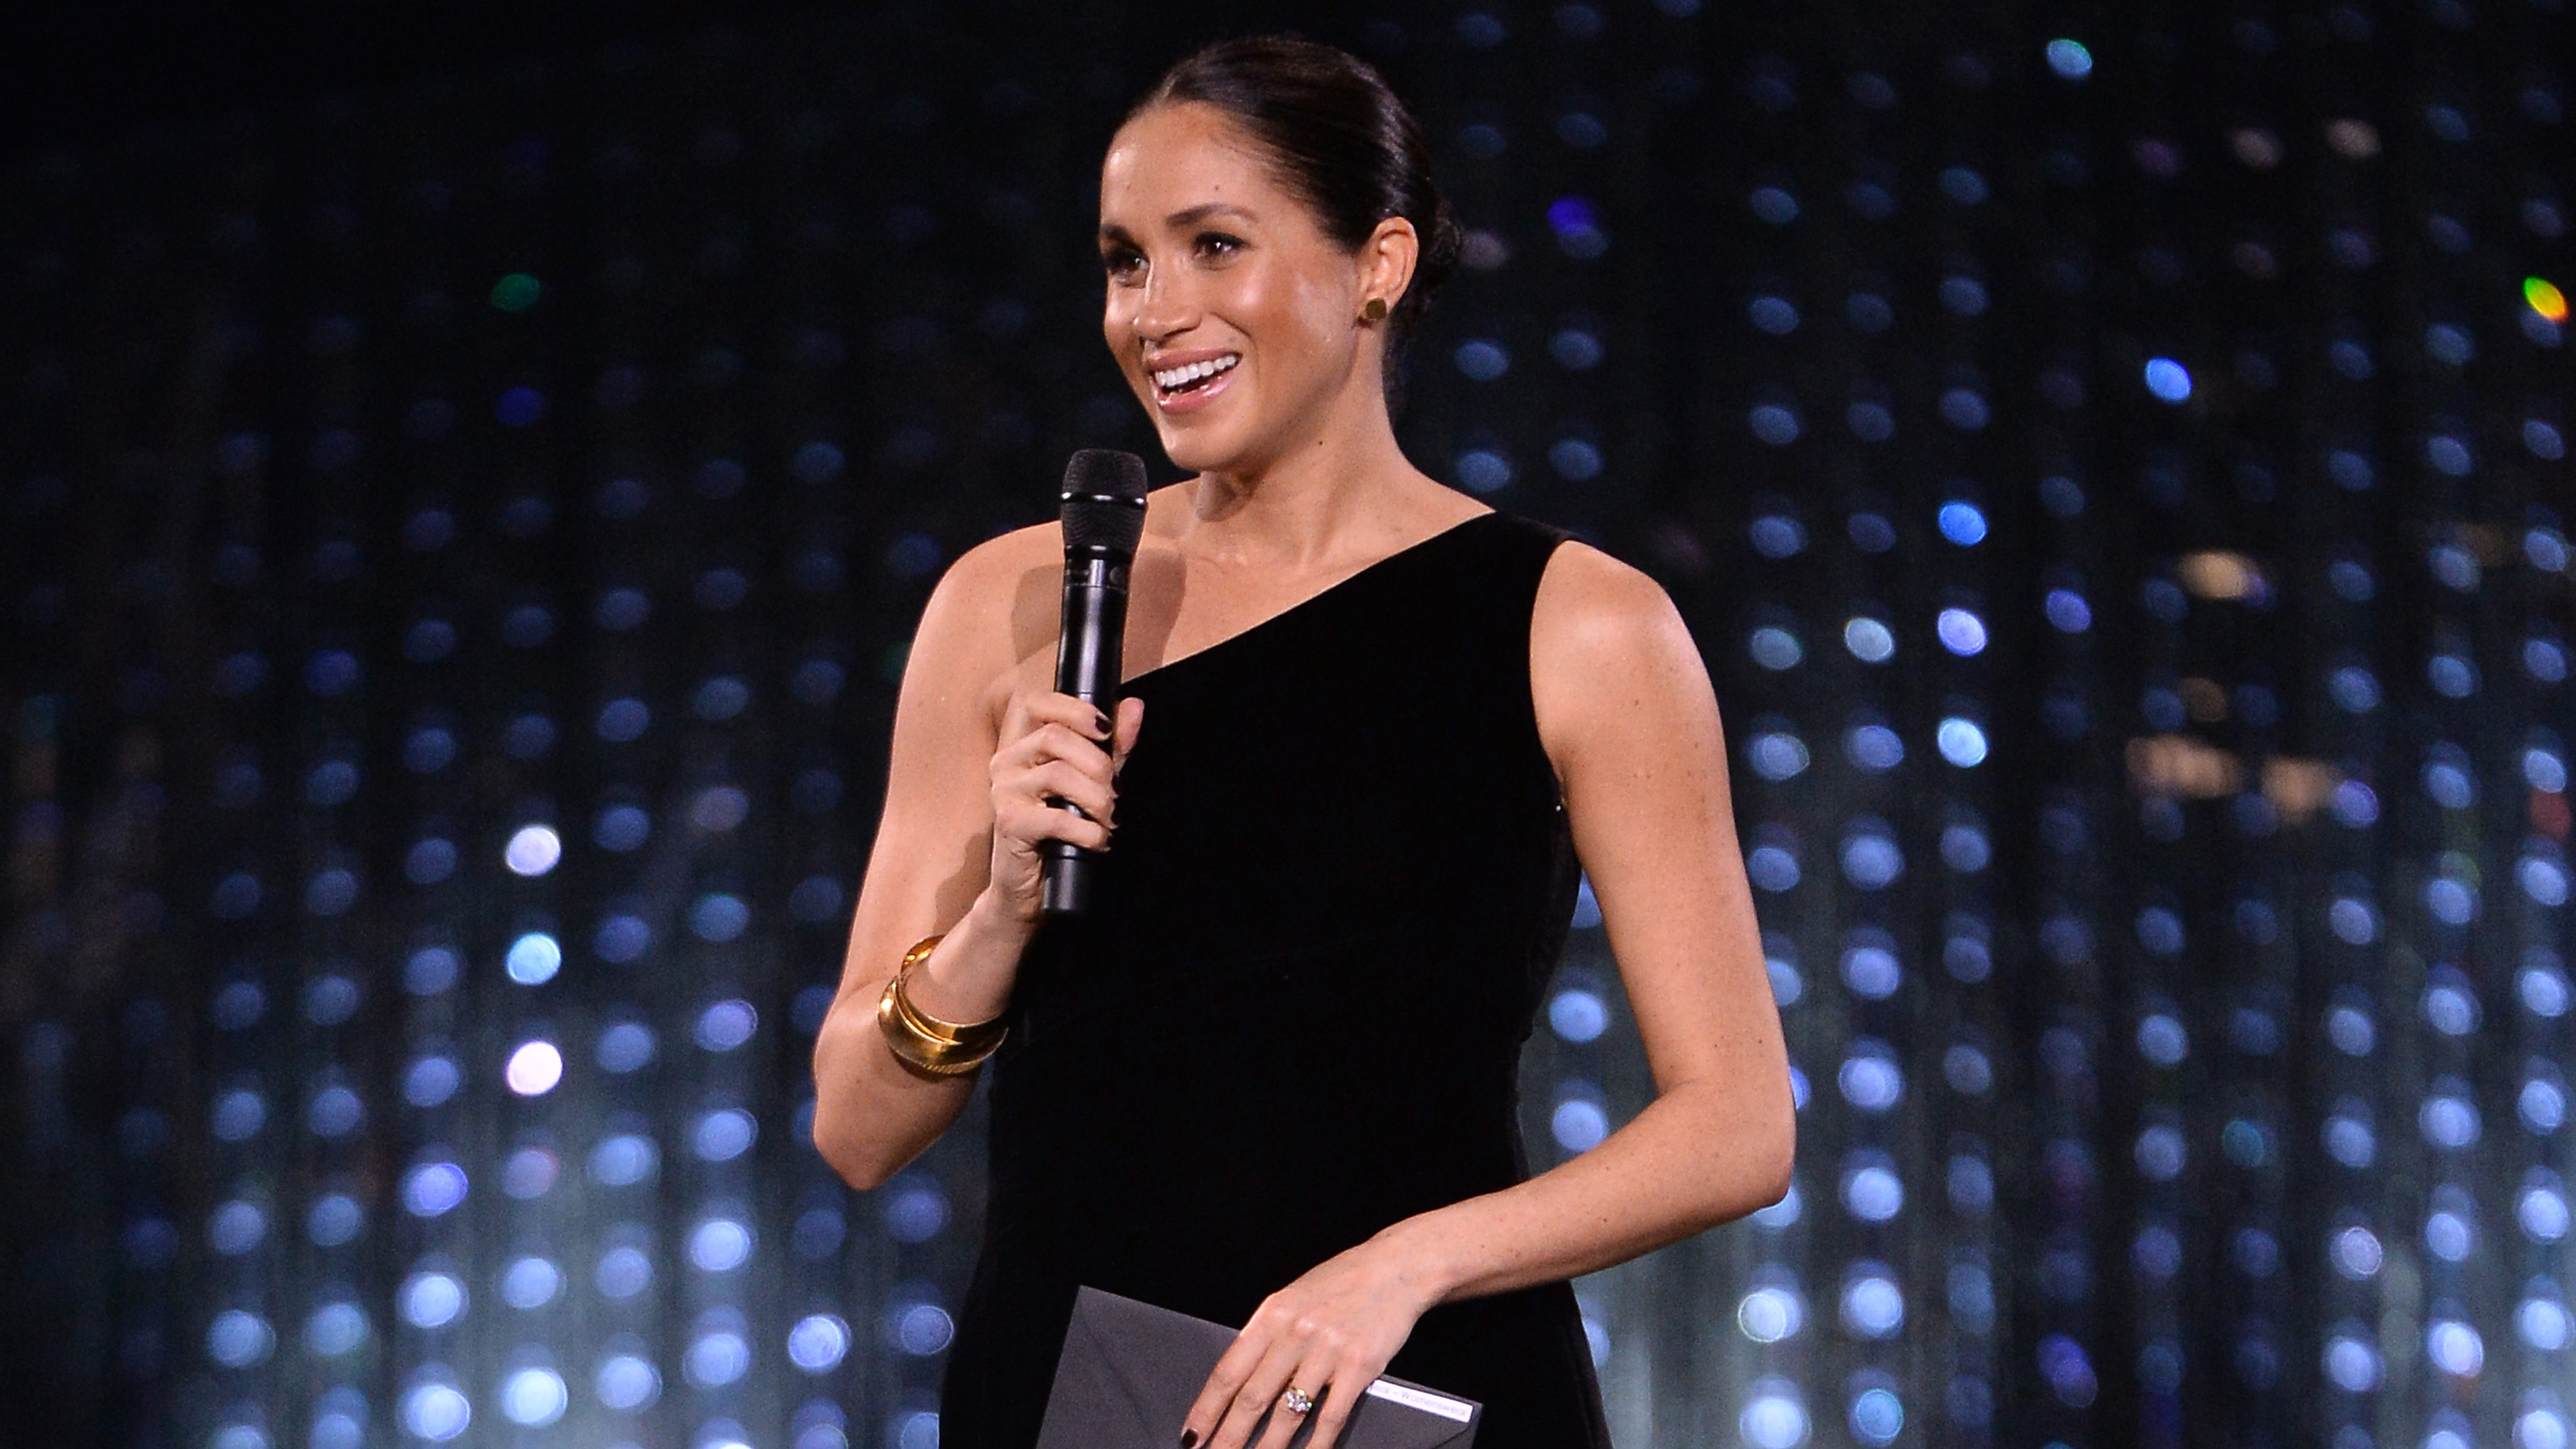 One time useLONDON, ENGLAND - DECEMBER 10:  Meghan, Duchess of Sussex on stage during The Fashion Awards 2018 In Partnership With Swarovski at Royal Albert Hall on December 10, 2018 in London, England.  (Photo by Jeff Spicer/BFC/Getty Images)